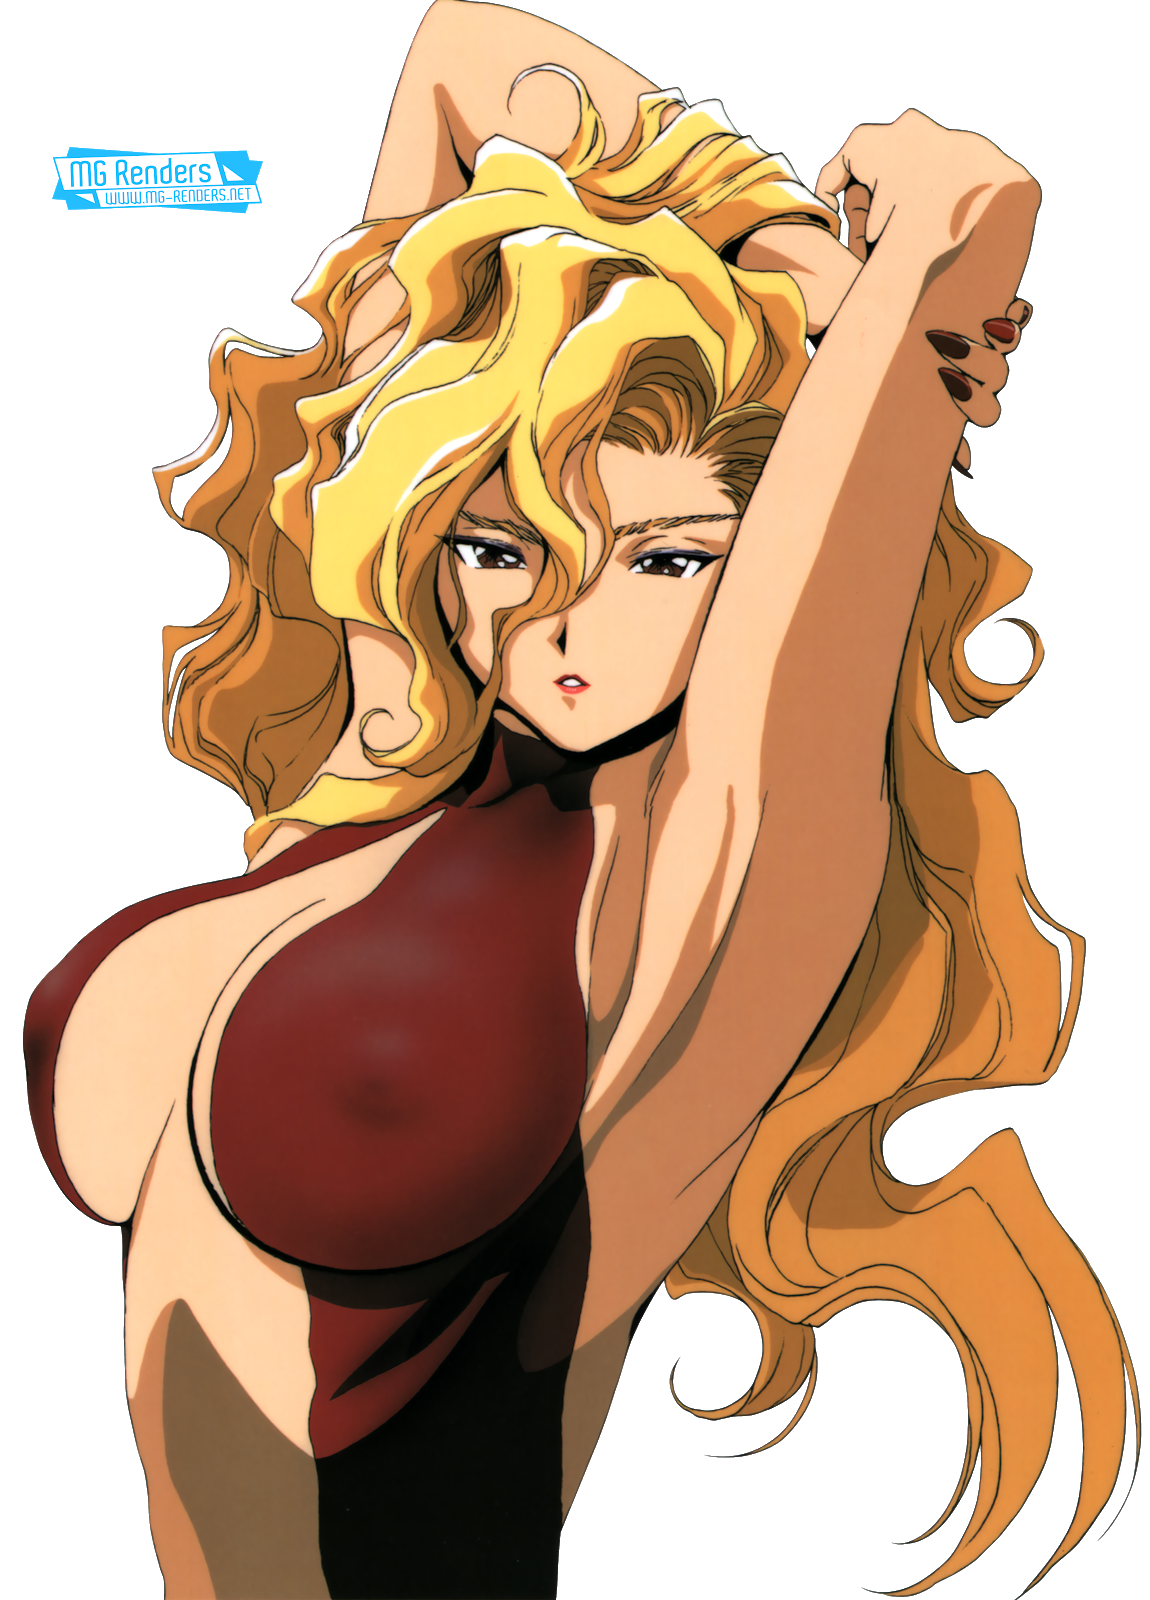 Tags: Render, Armpit, Arms up, Bare shoulders, Blonde hair, Cleavage, Dress, Erect nipples, Golden Boy, Large Breasts, Madam President